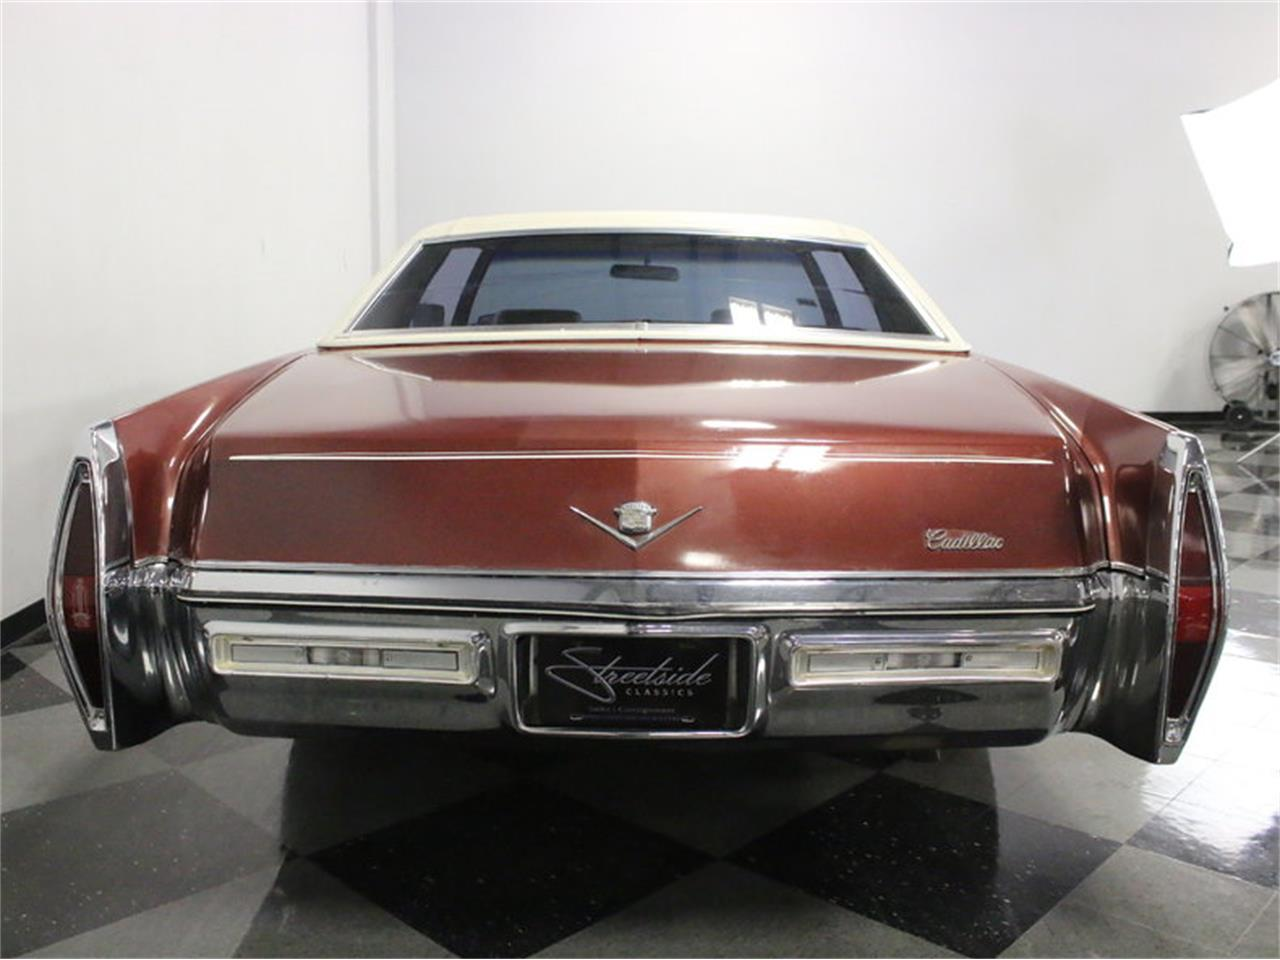 Large Picture of '72 Cadillac Coupe DeVille located in Ft Worth Texas - $9,995.00 - L1A0